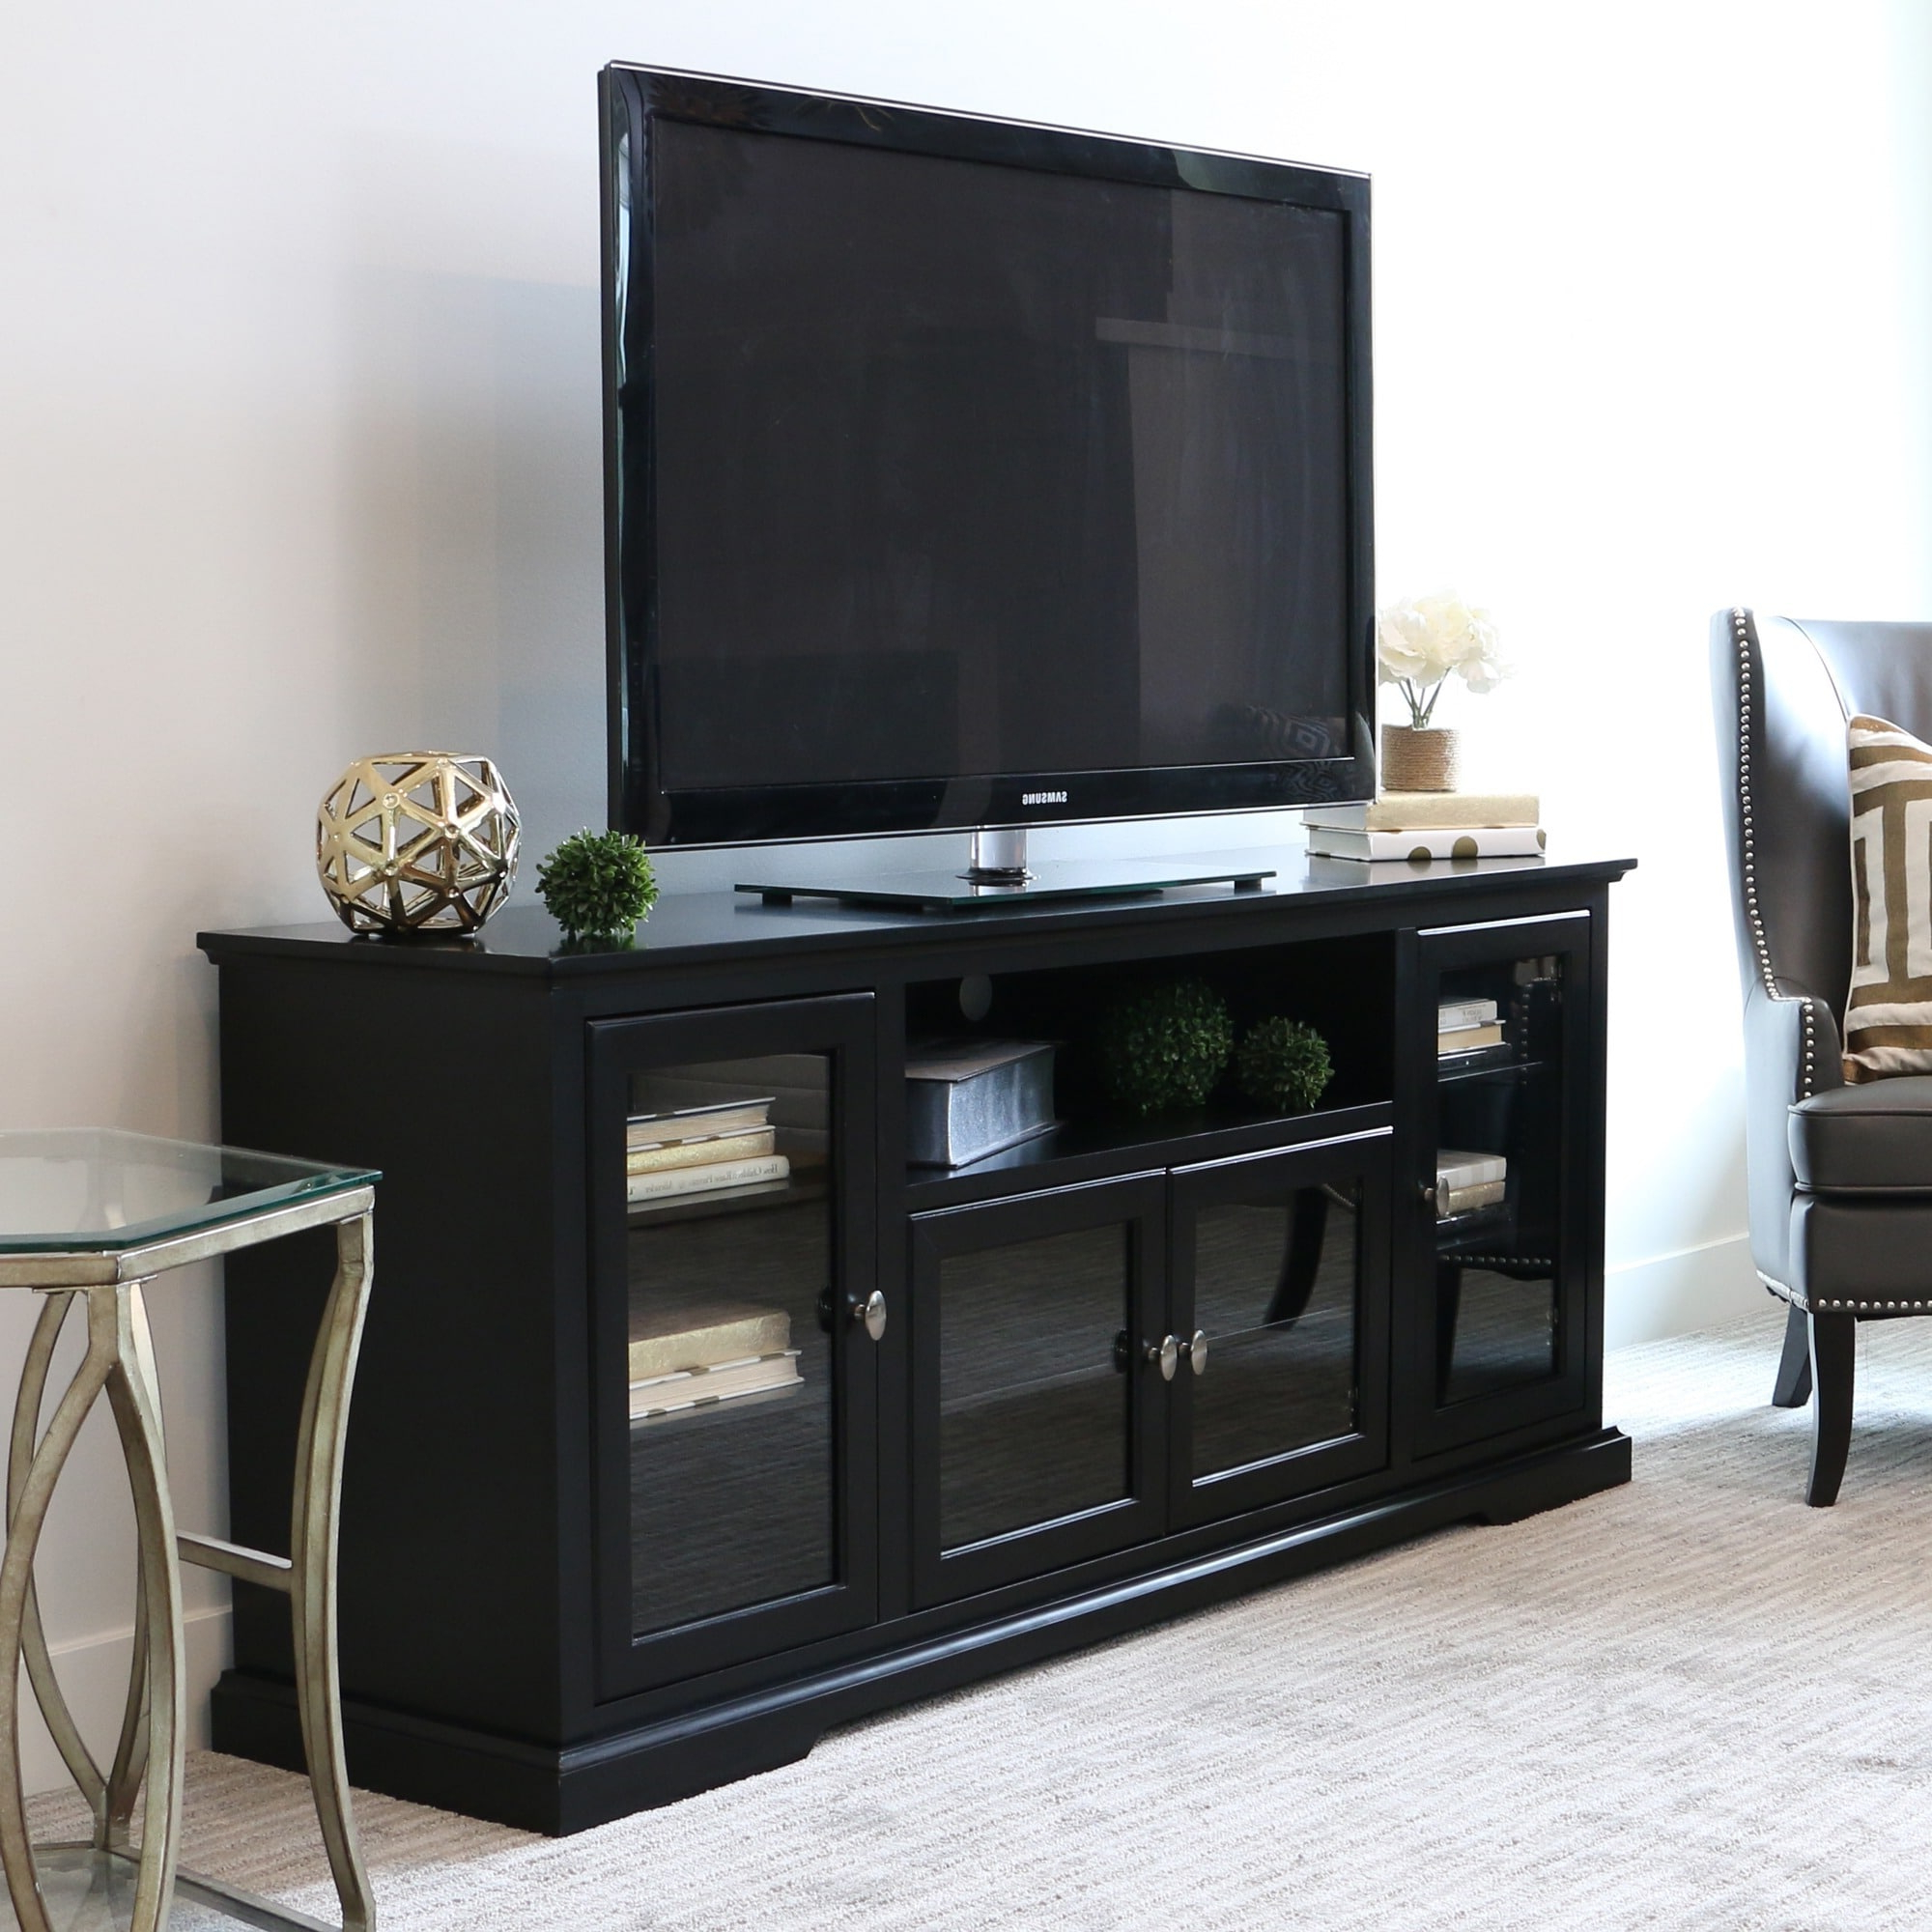 Shop 70 Inch Black Wood Highboy Tv Stand – Free Shipping For Modern Black Tv Stands On Wheels (View 2 of 20)